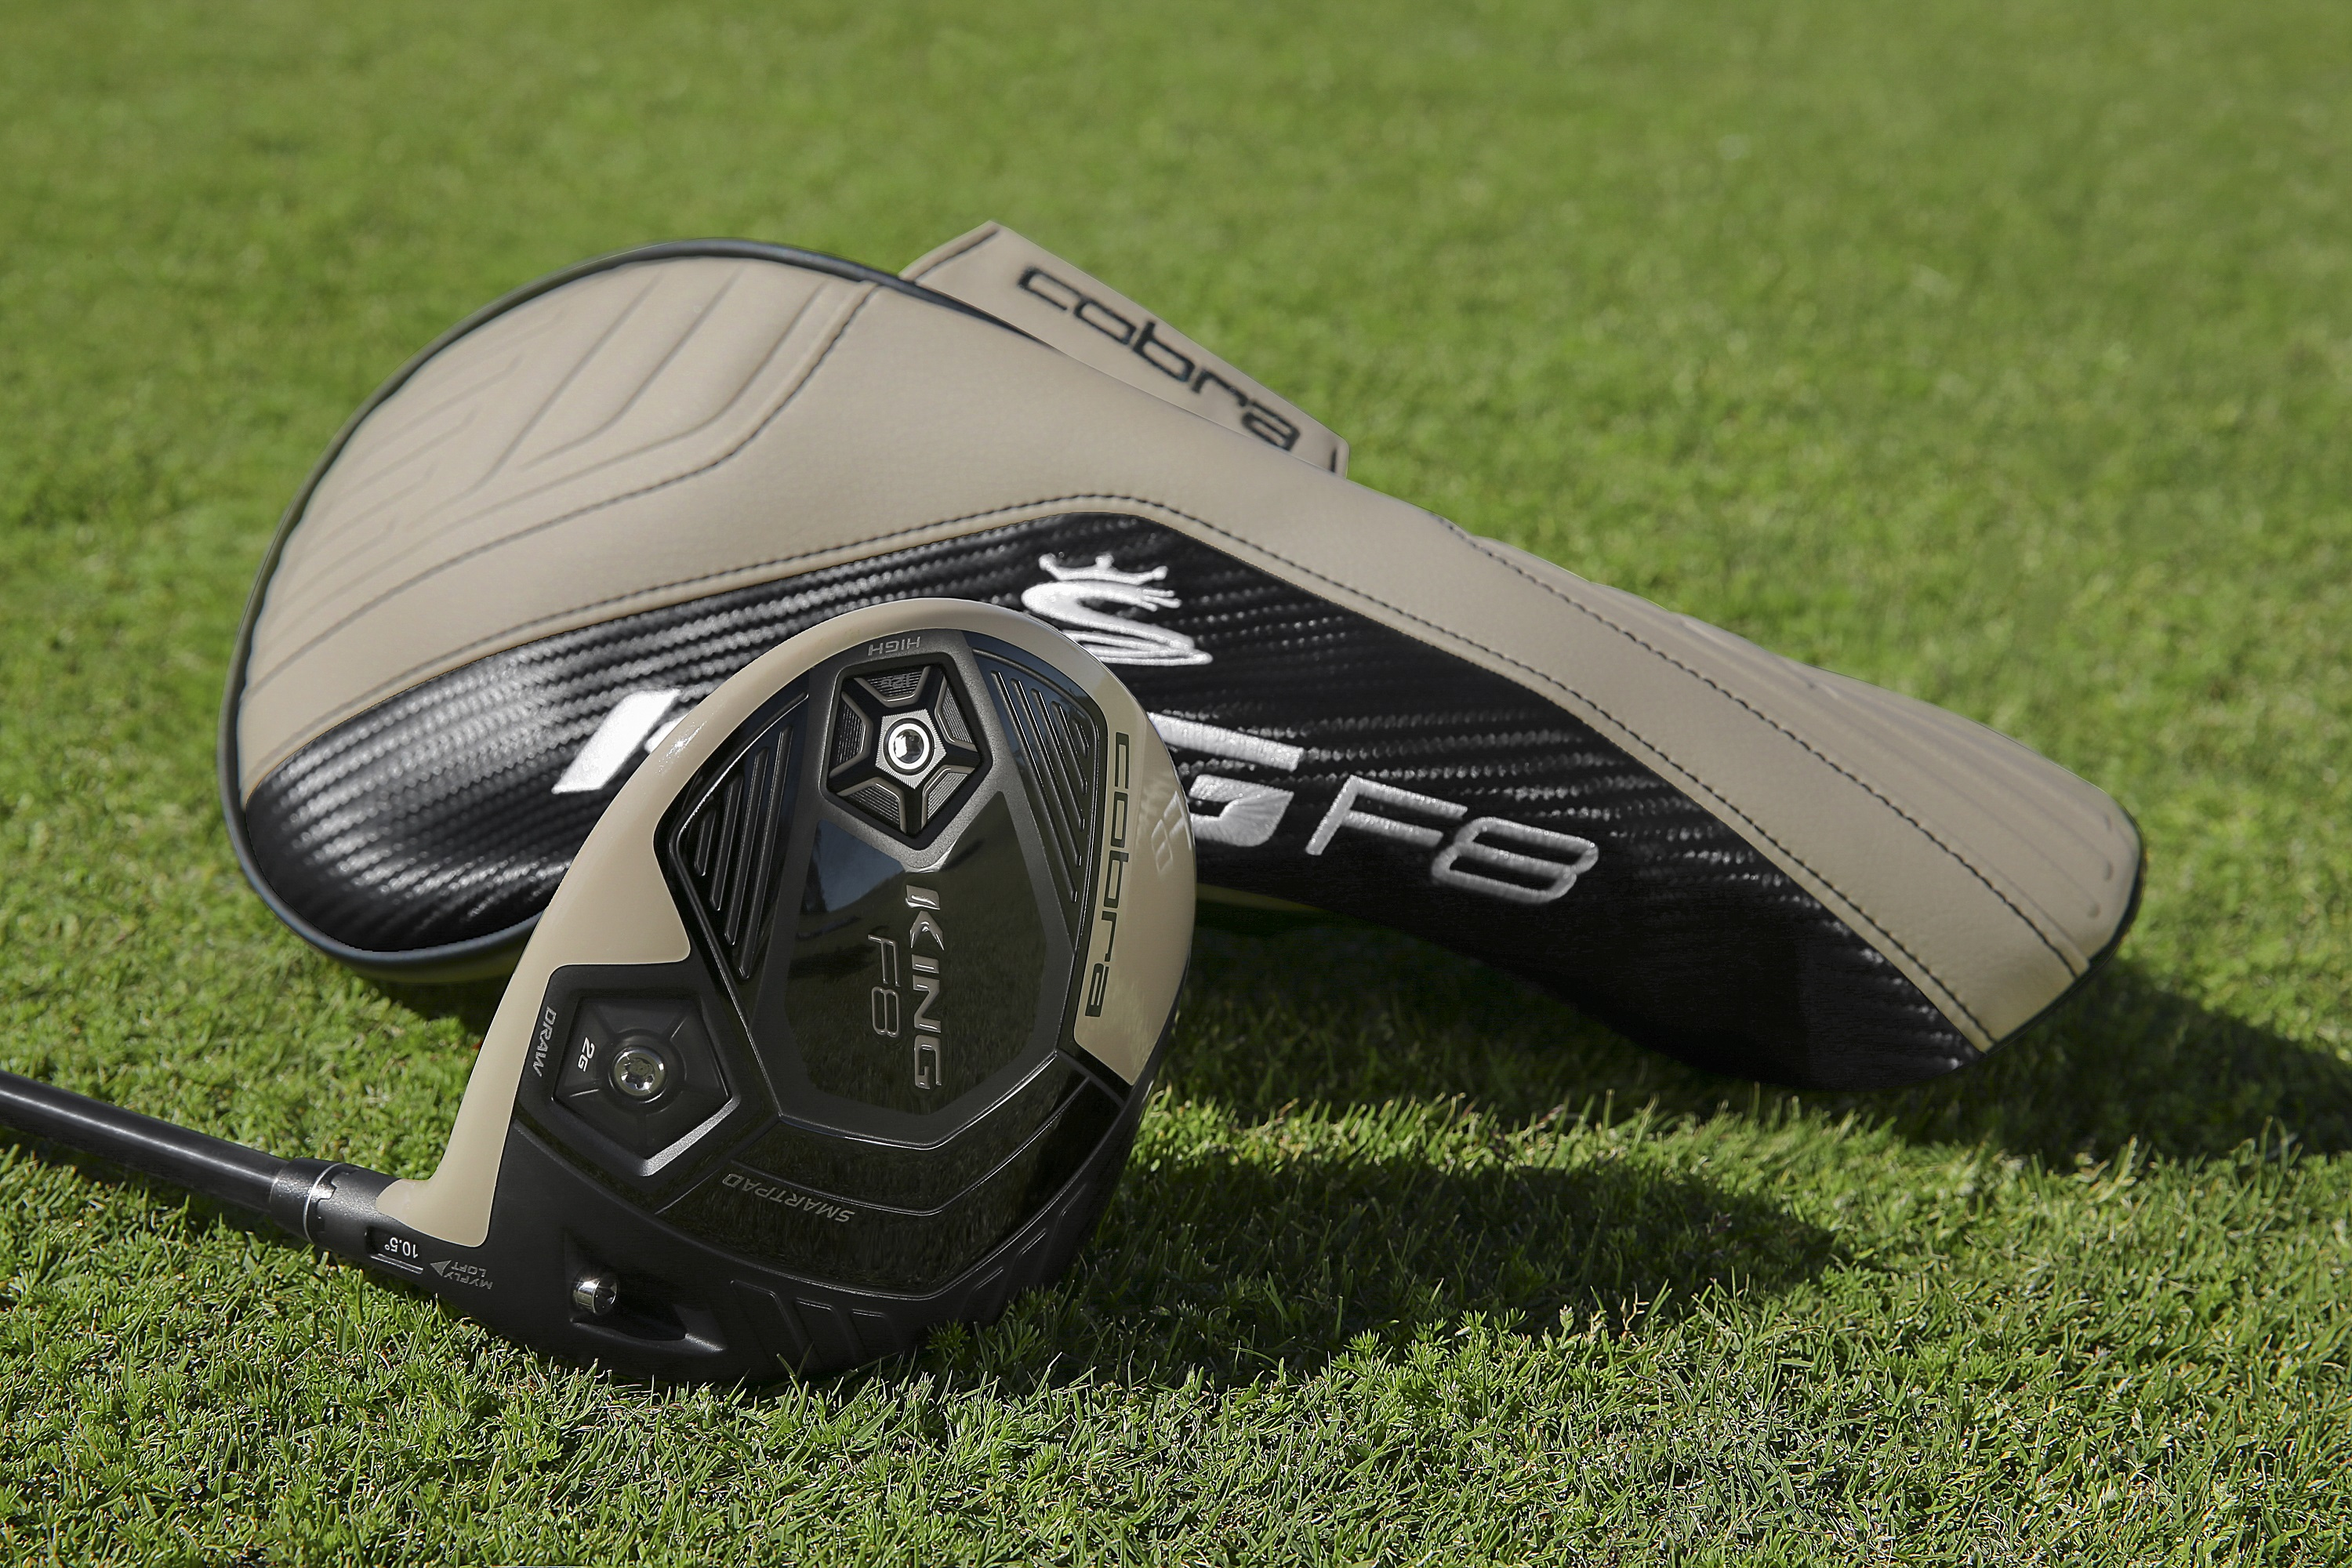 518b2b30216b A portion of proceeds from the sale of the Volition drivers will go to the  Folds of Honor Foundation